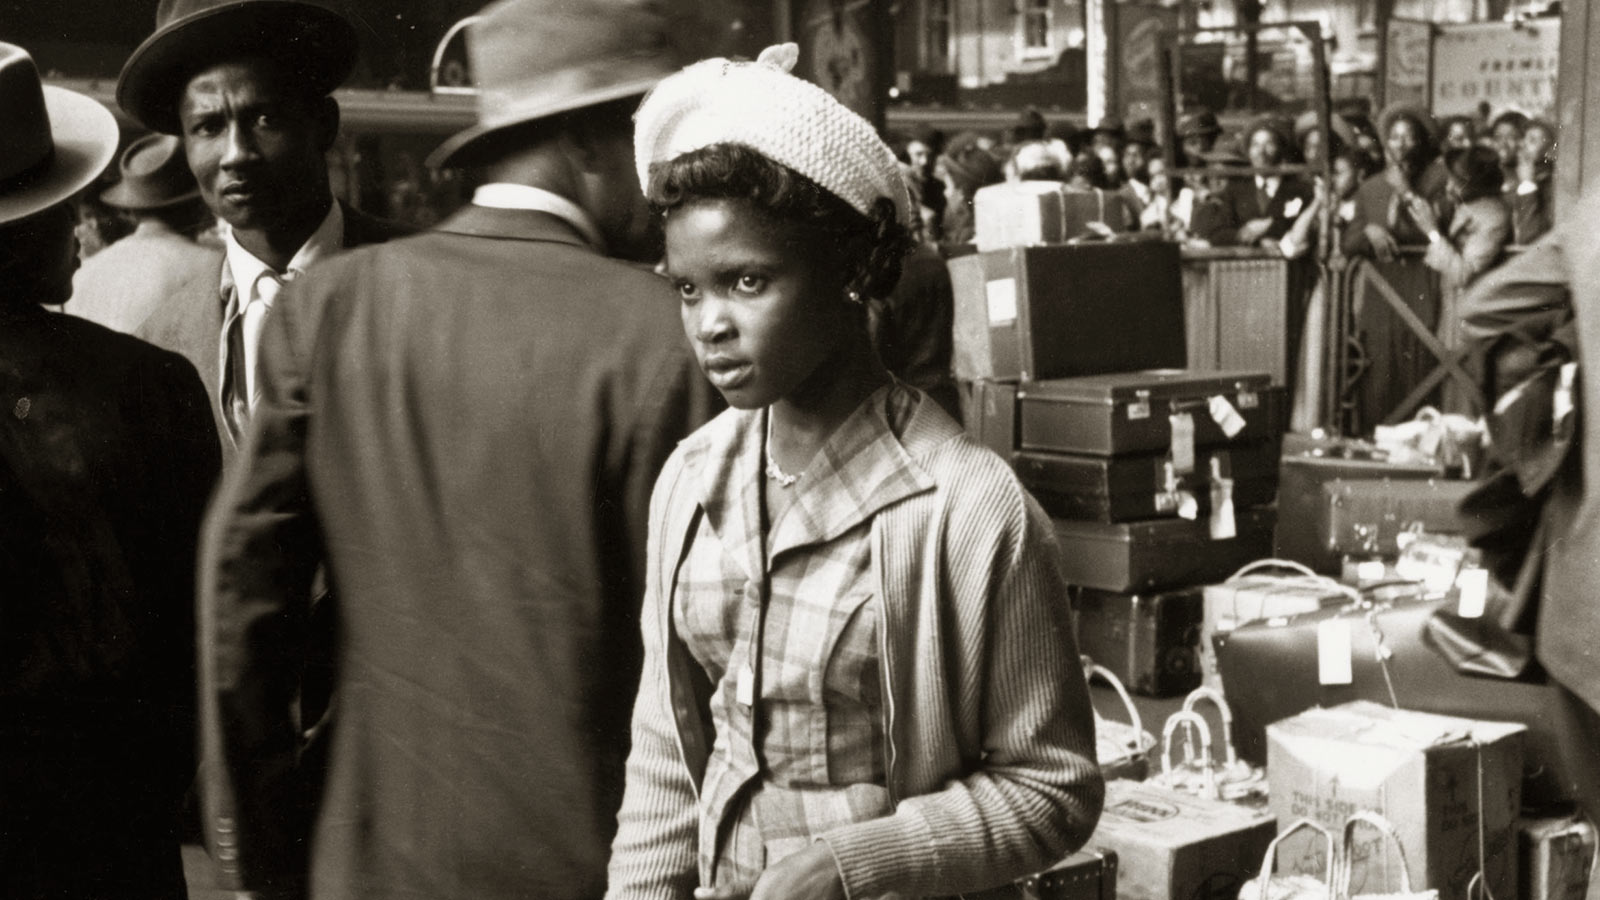 Windrush Stories homepage; photograph showing people arriving at London's Victoria Station from the Carribean via Southampton